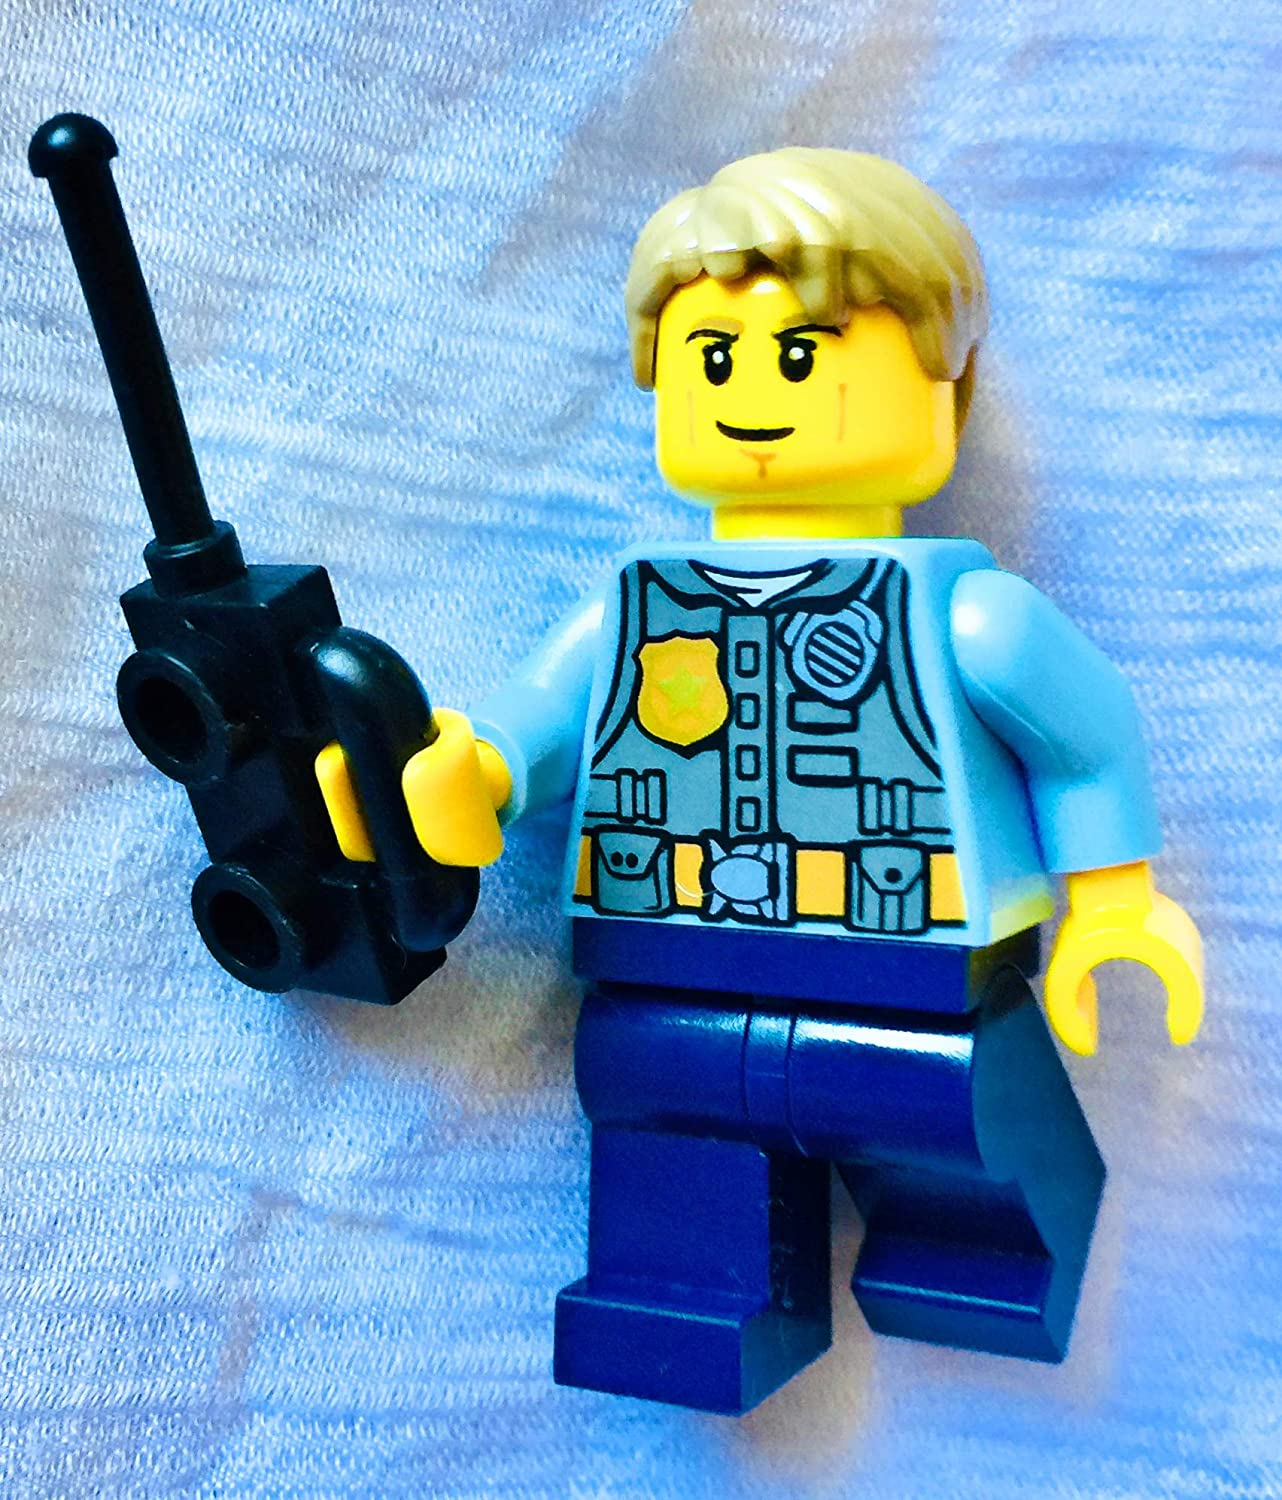 GENUINE LEGO CHASE MCCAIN MINIFIGURE POLICE COP 60007 CITY UNDERCOVER GAME